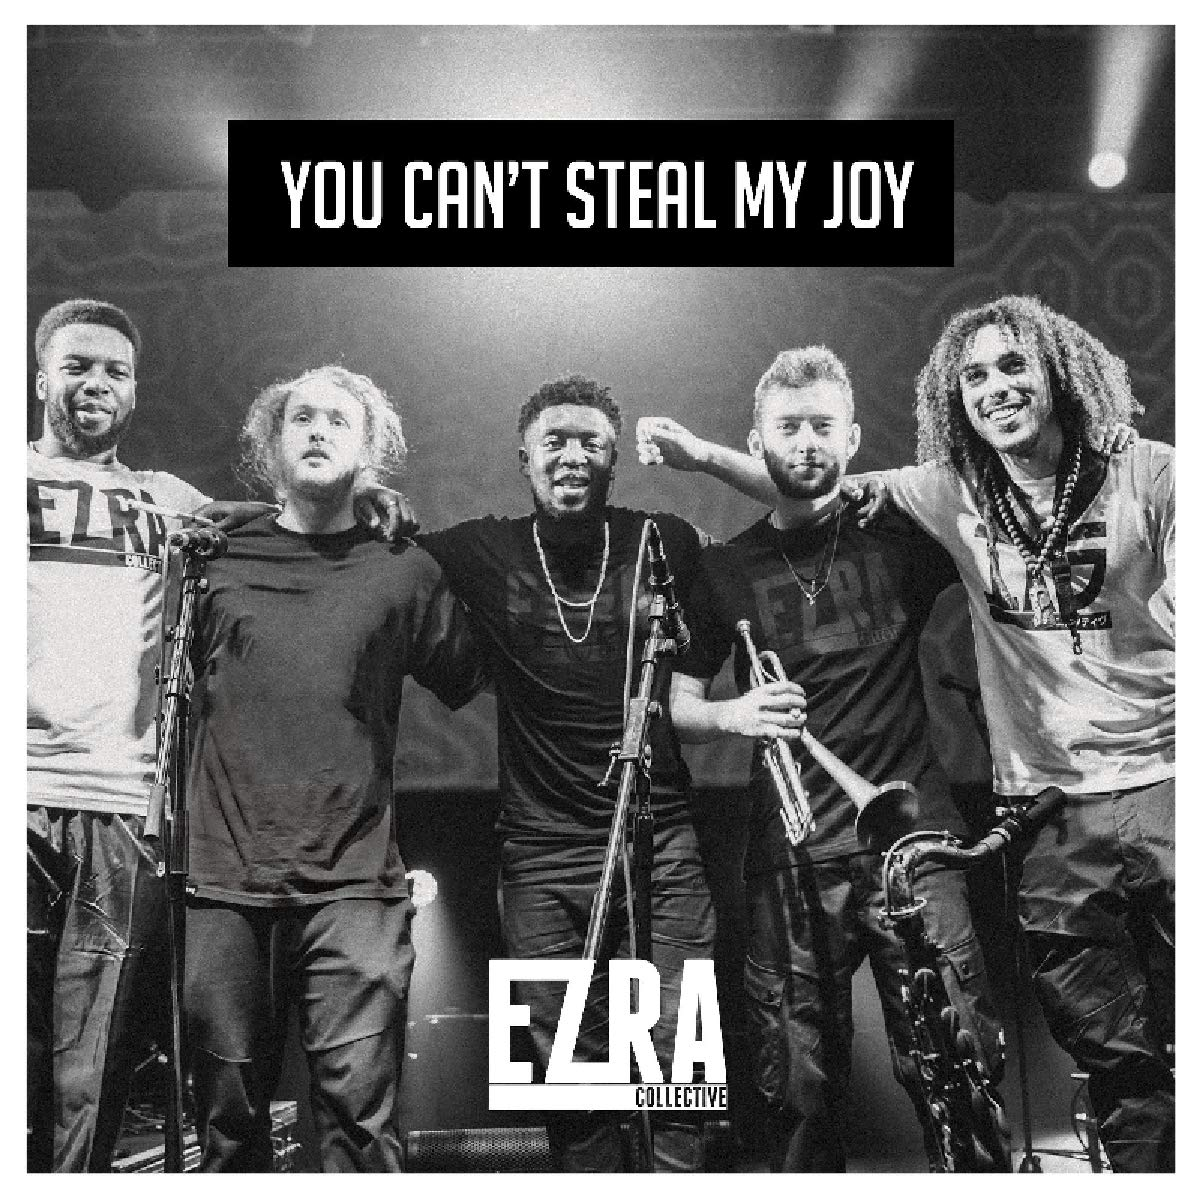 EZRA COLLECTIVE - You Cant Steal My Joy cover